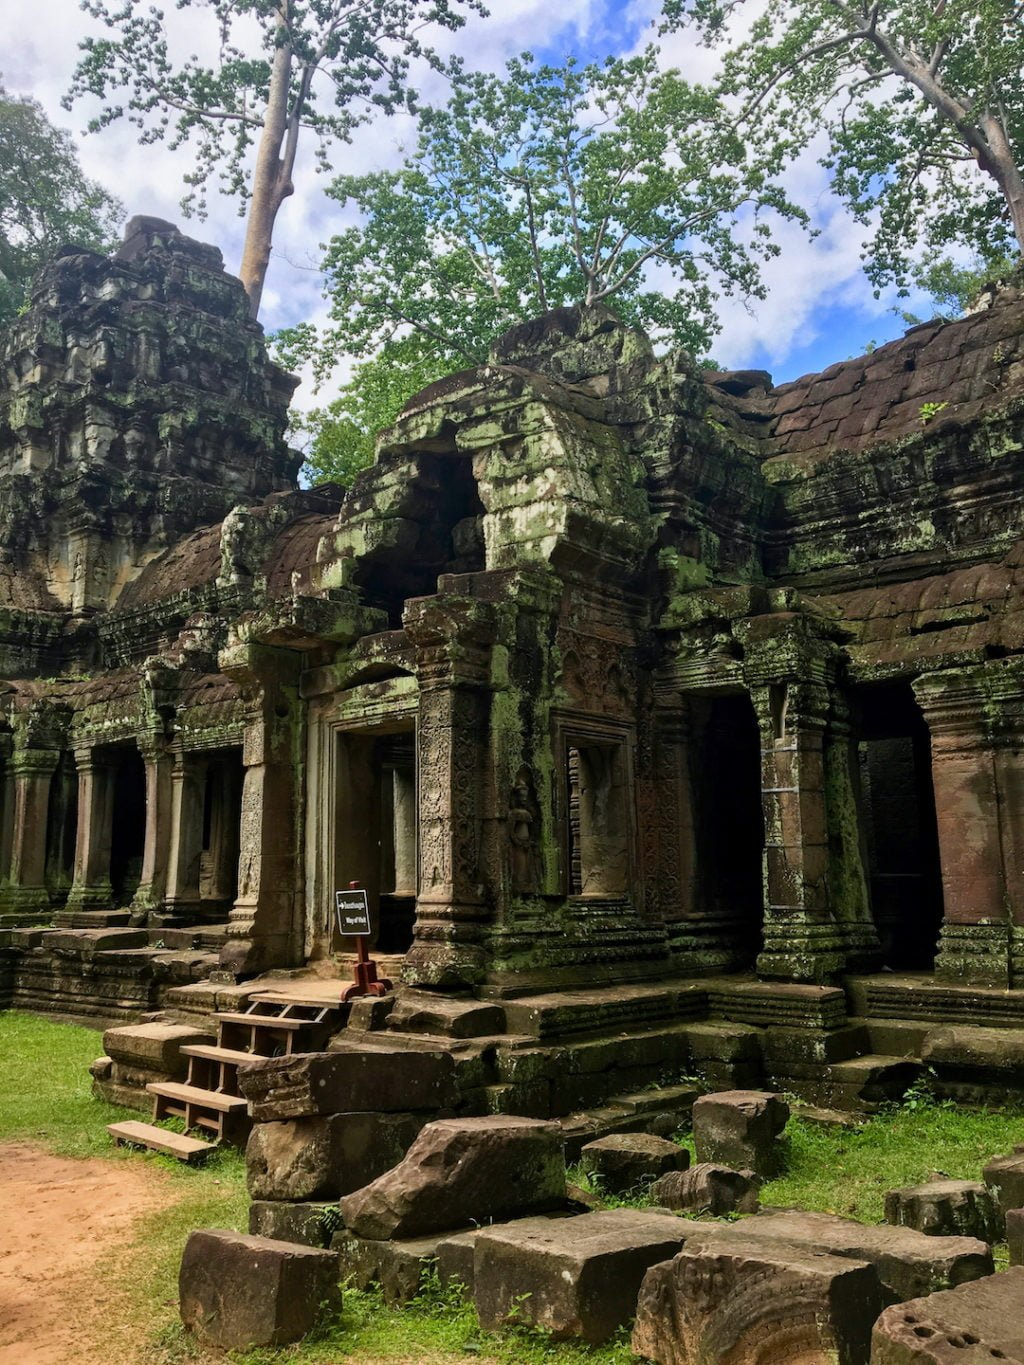 Temple Ruins • Remarkable Tips to Make Traveling to Cambodia Easier | The Wanderful Me